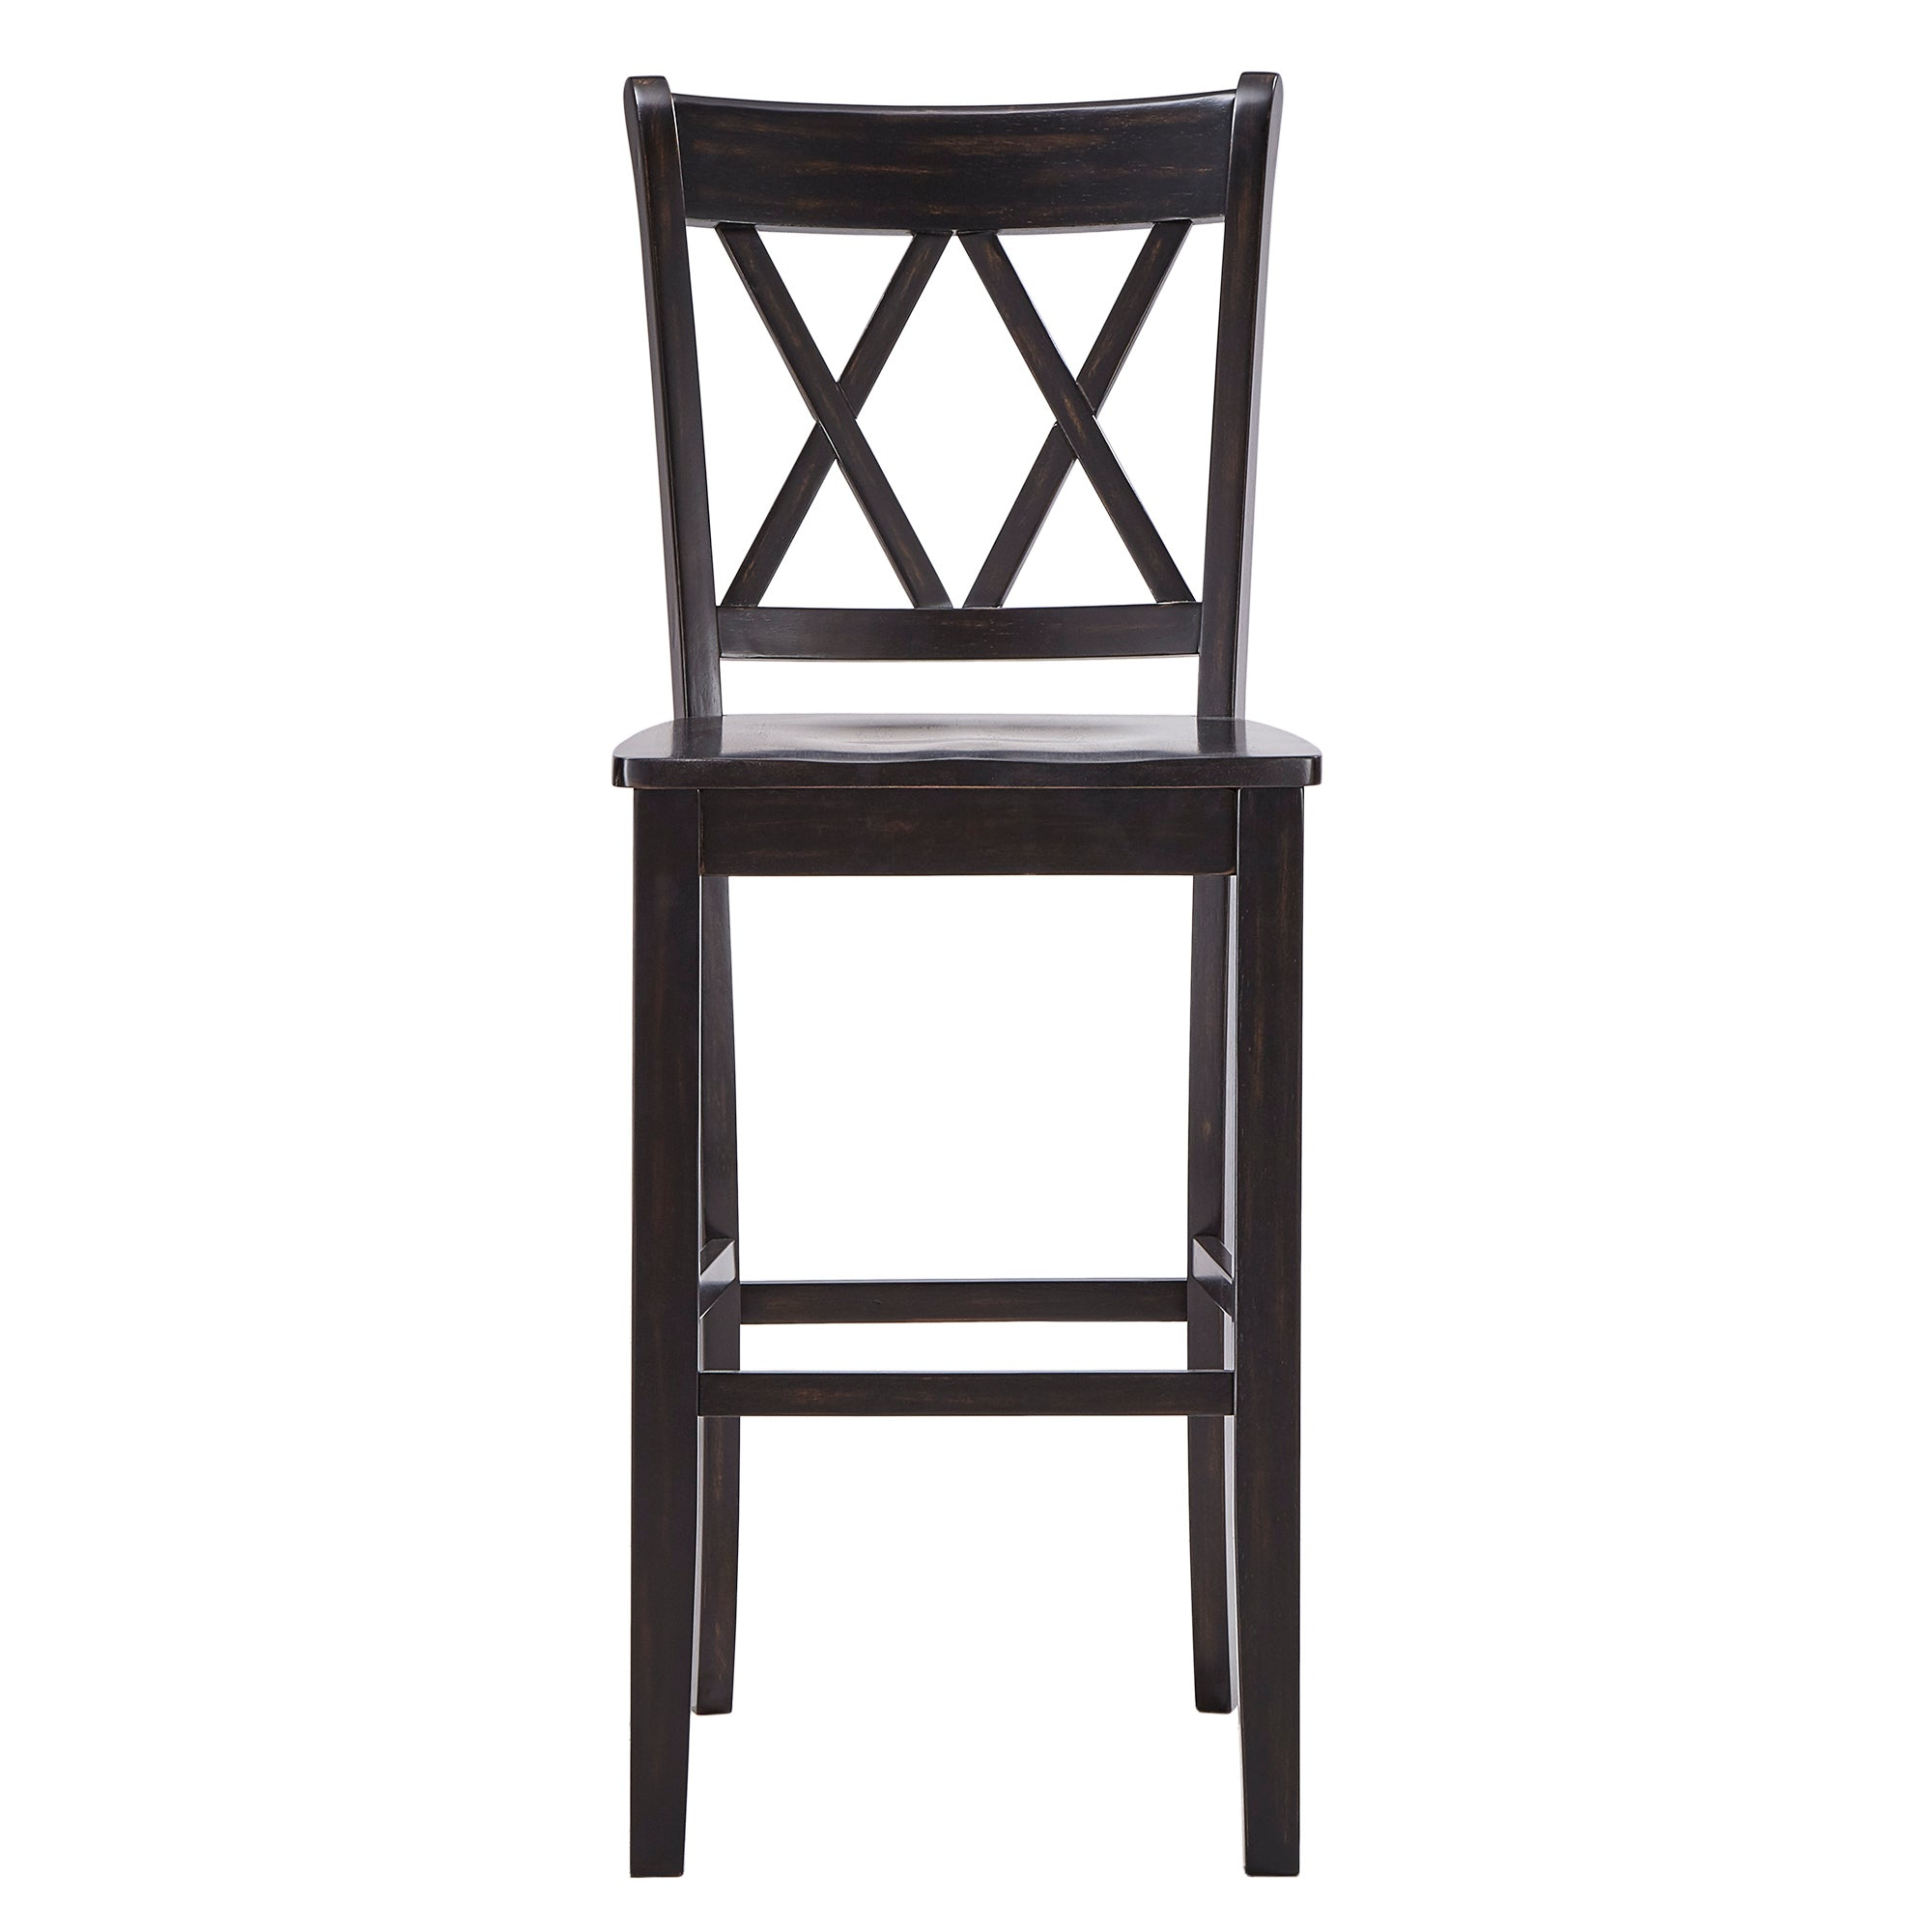 Double X Back Bar Height Chairs (Set of 2) - Antique Black Finish